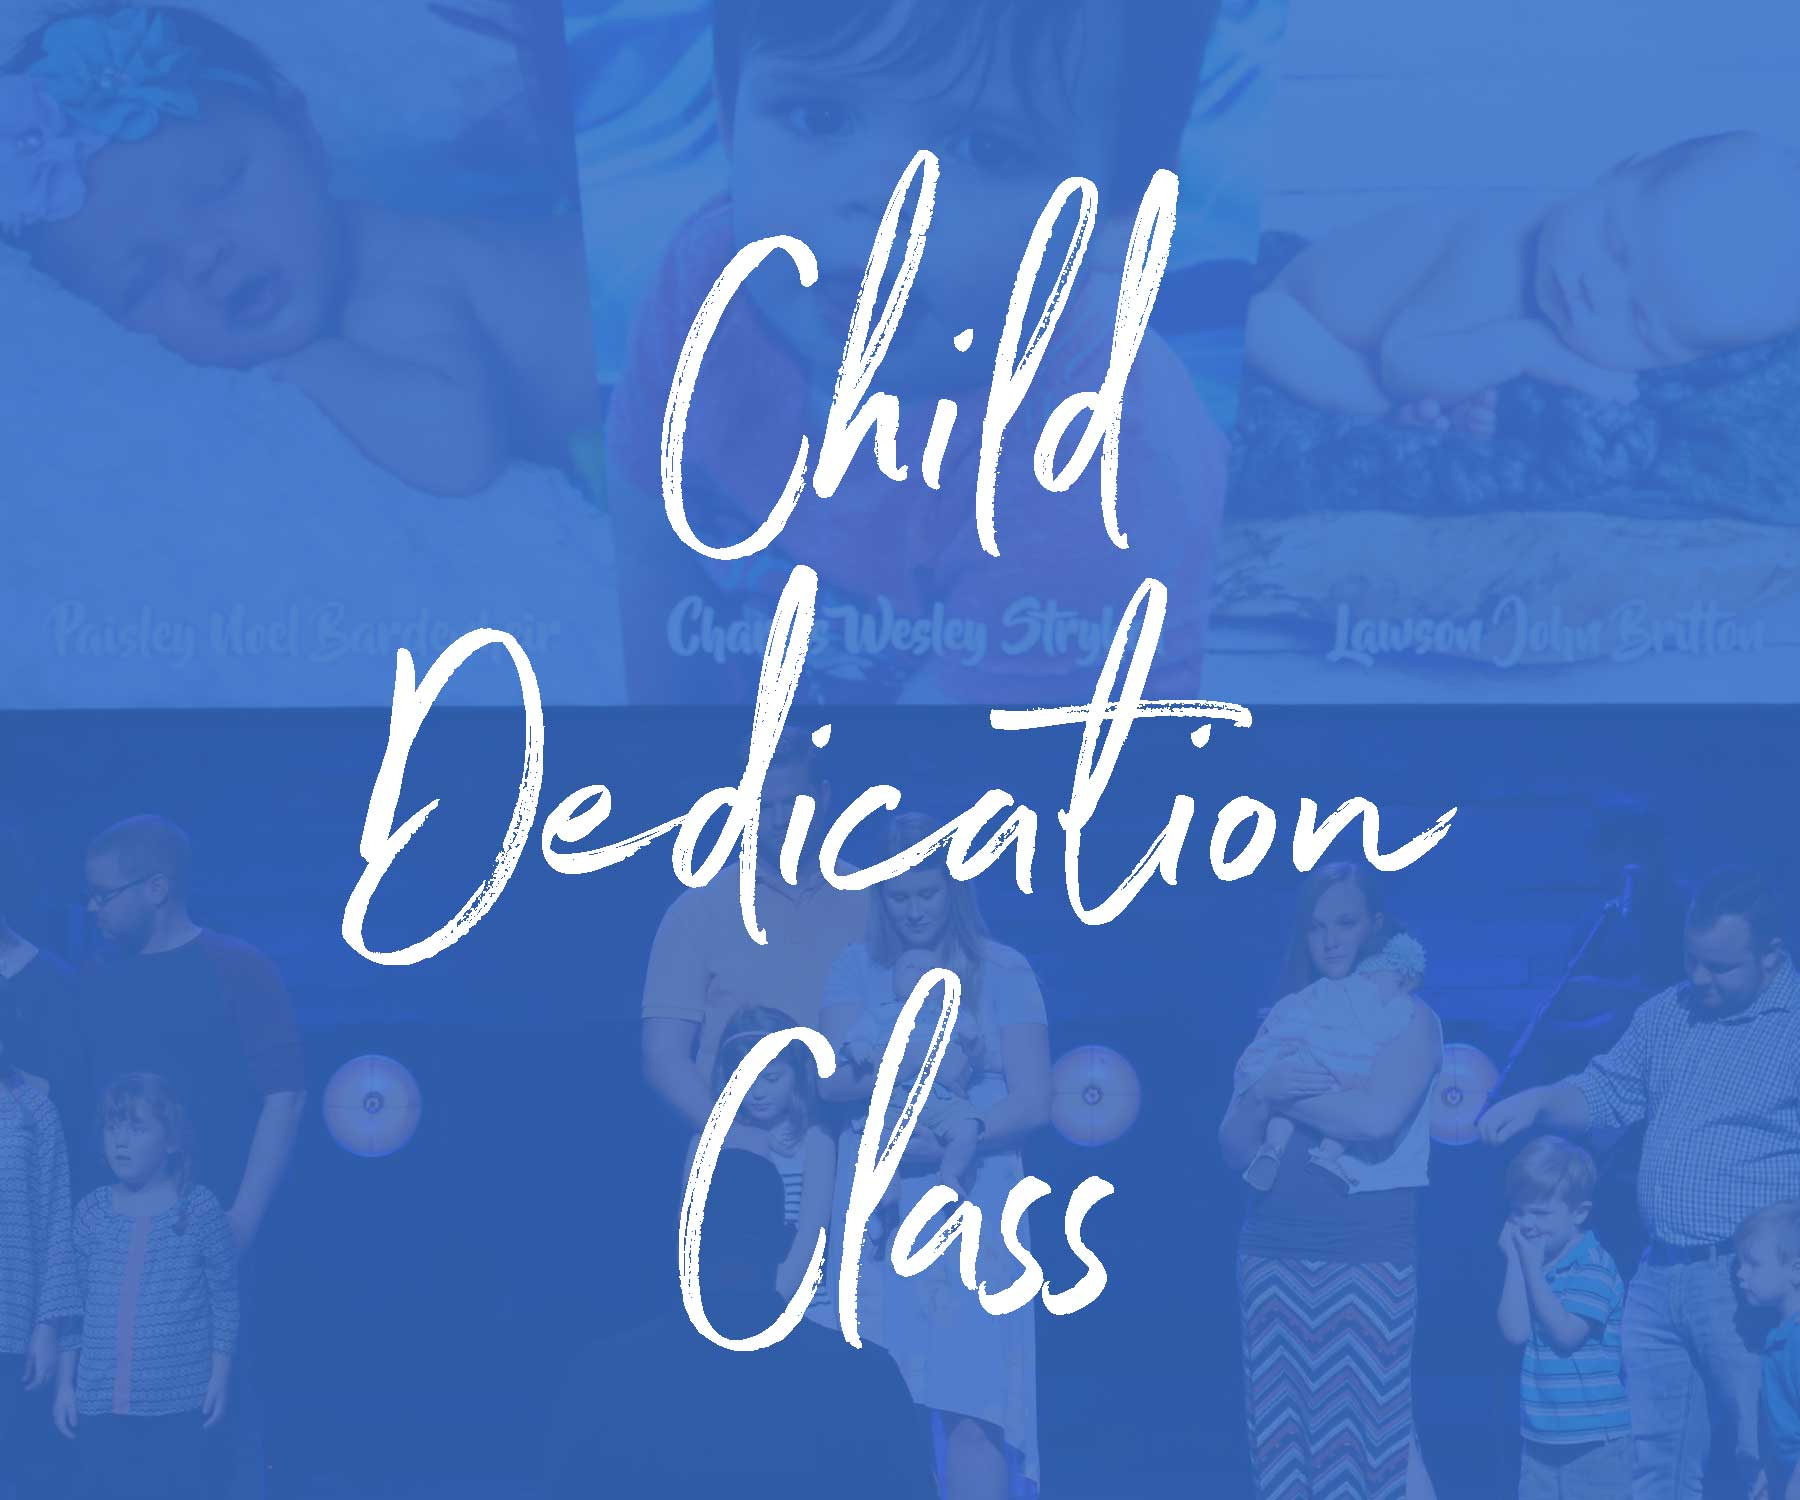 Child dedication class 2